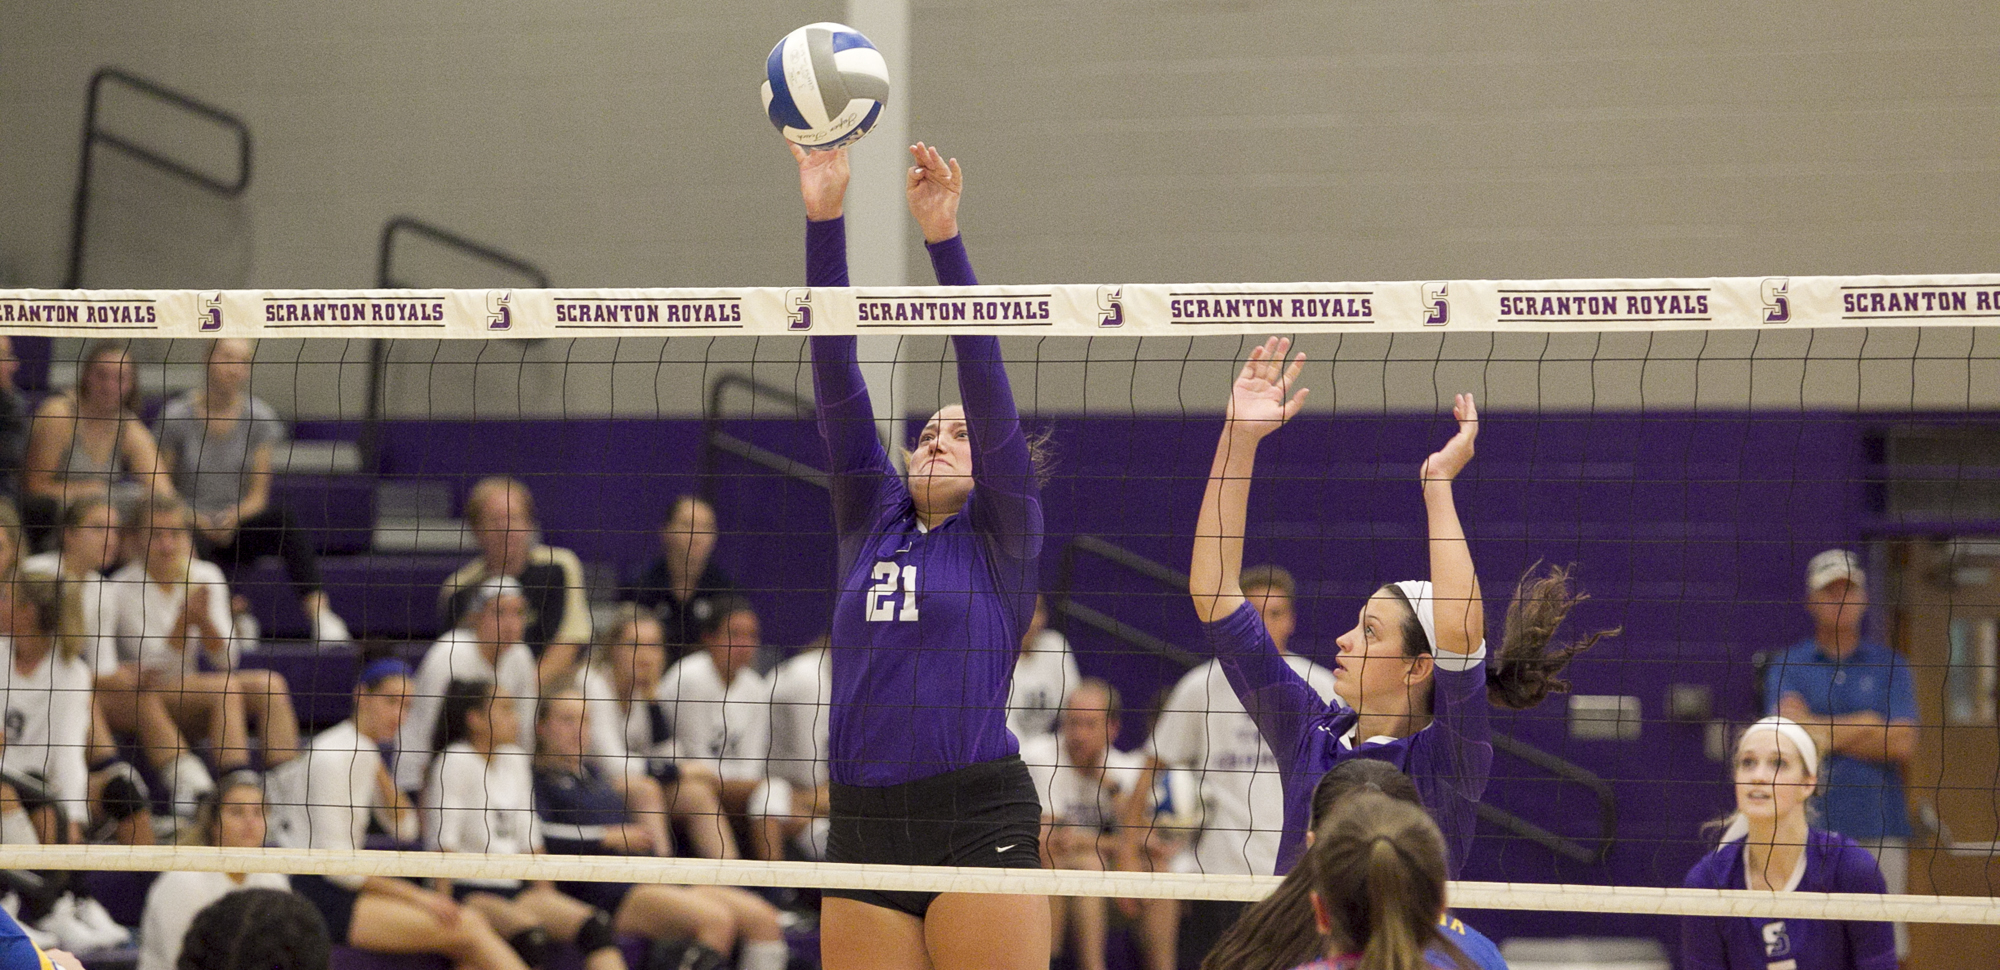 Jillian Graham totaled six kills and six digs in Scranton's season-opening win over Misericordia on Friday.